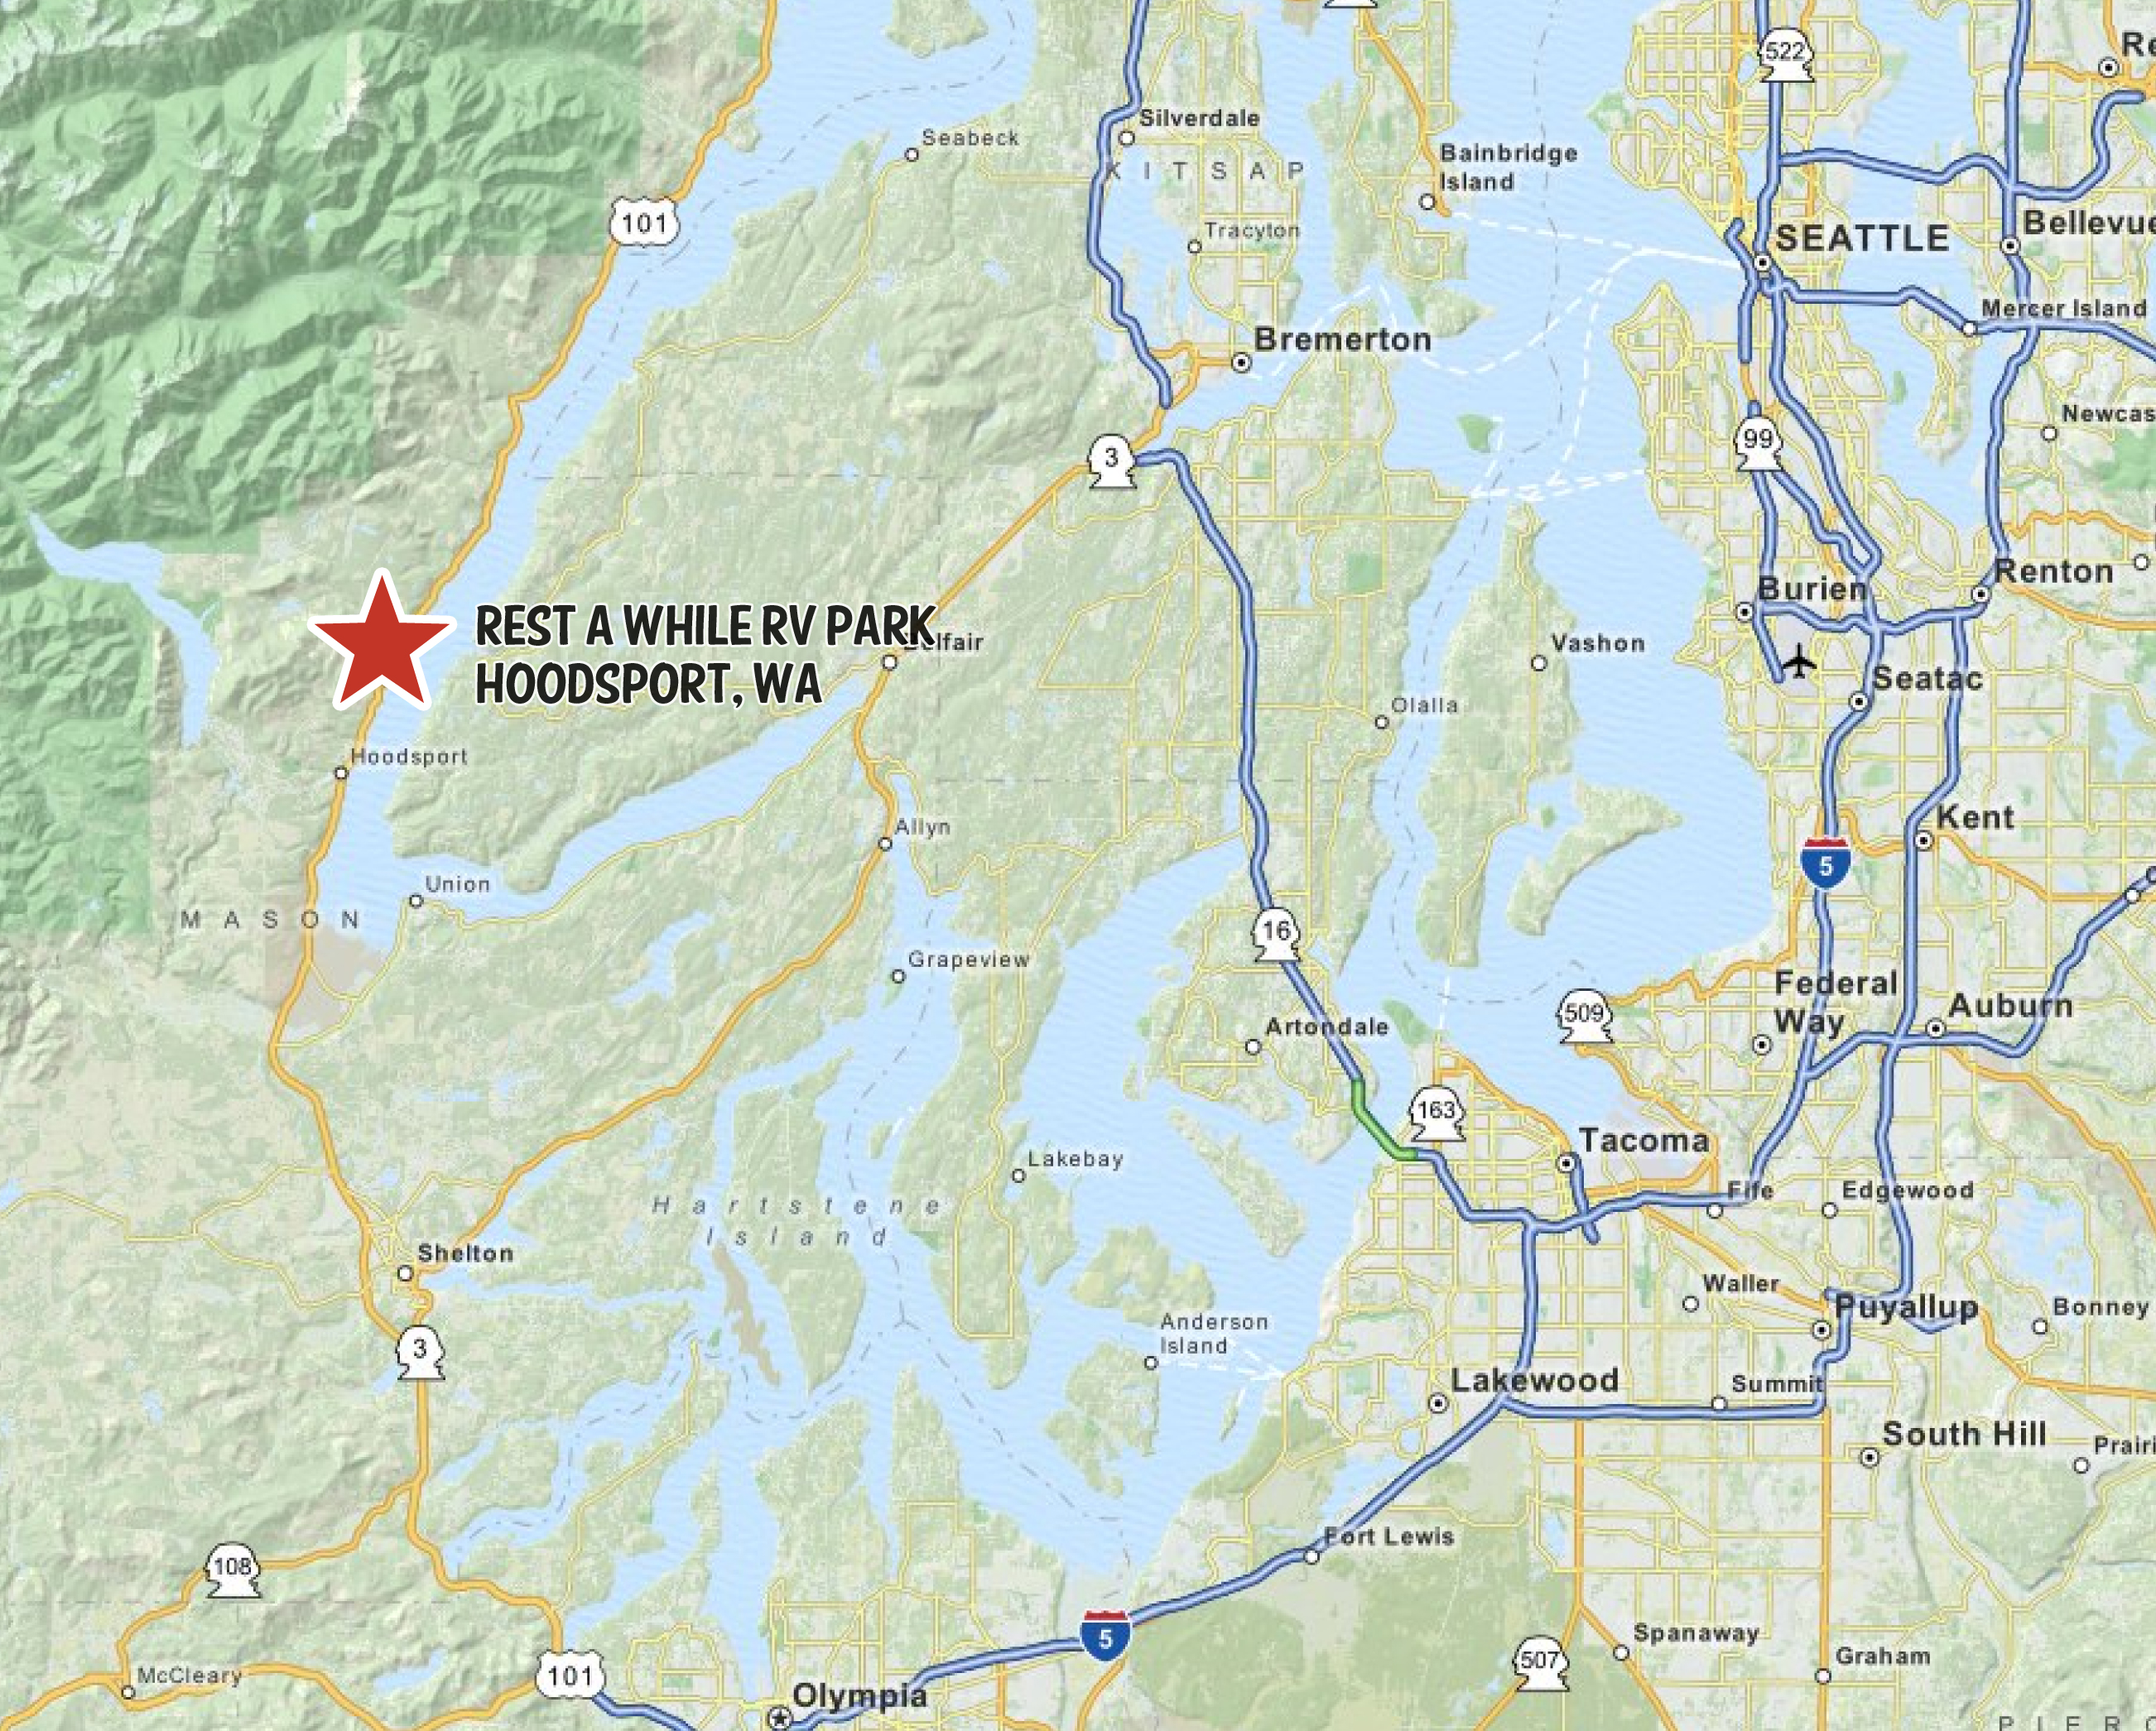 Map of Rest a While RV Resort in Hoodsport, WA